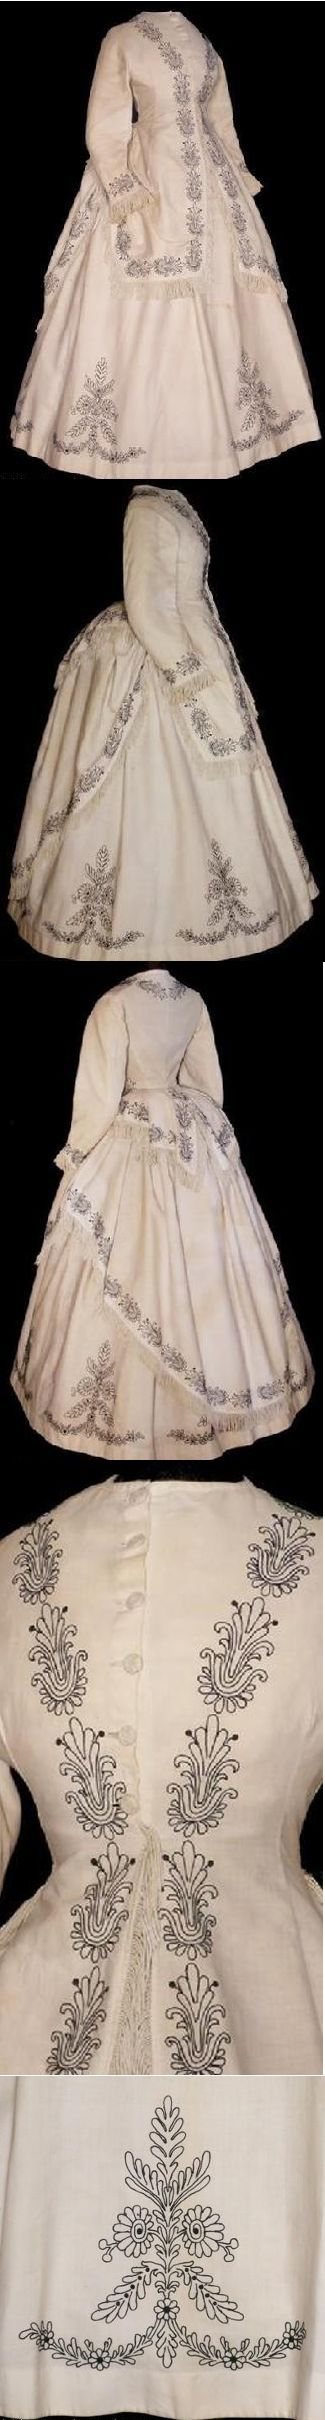 The Barrington House [unknown province] [unknown fiber content] embroidered seaside bustle dress, circa 1868.